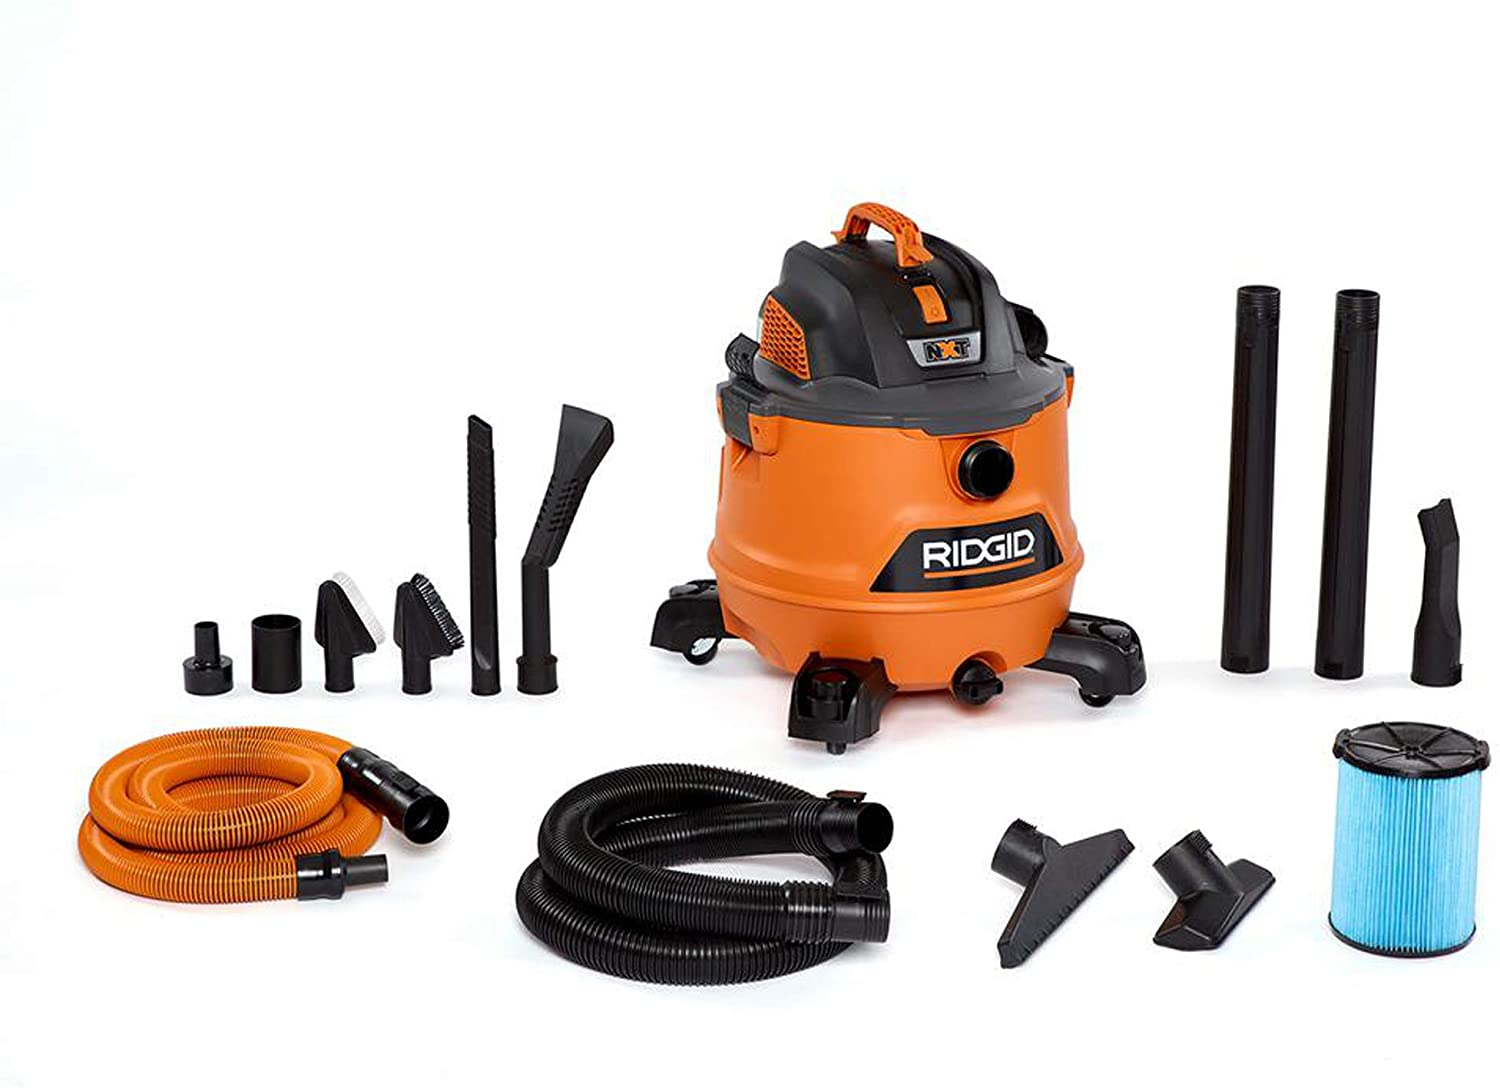 Commercial Wet/Dry vacuum cleaner for car wash and auto detailing RIDGID 14-Gal. 6.0 Peak HP